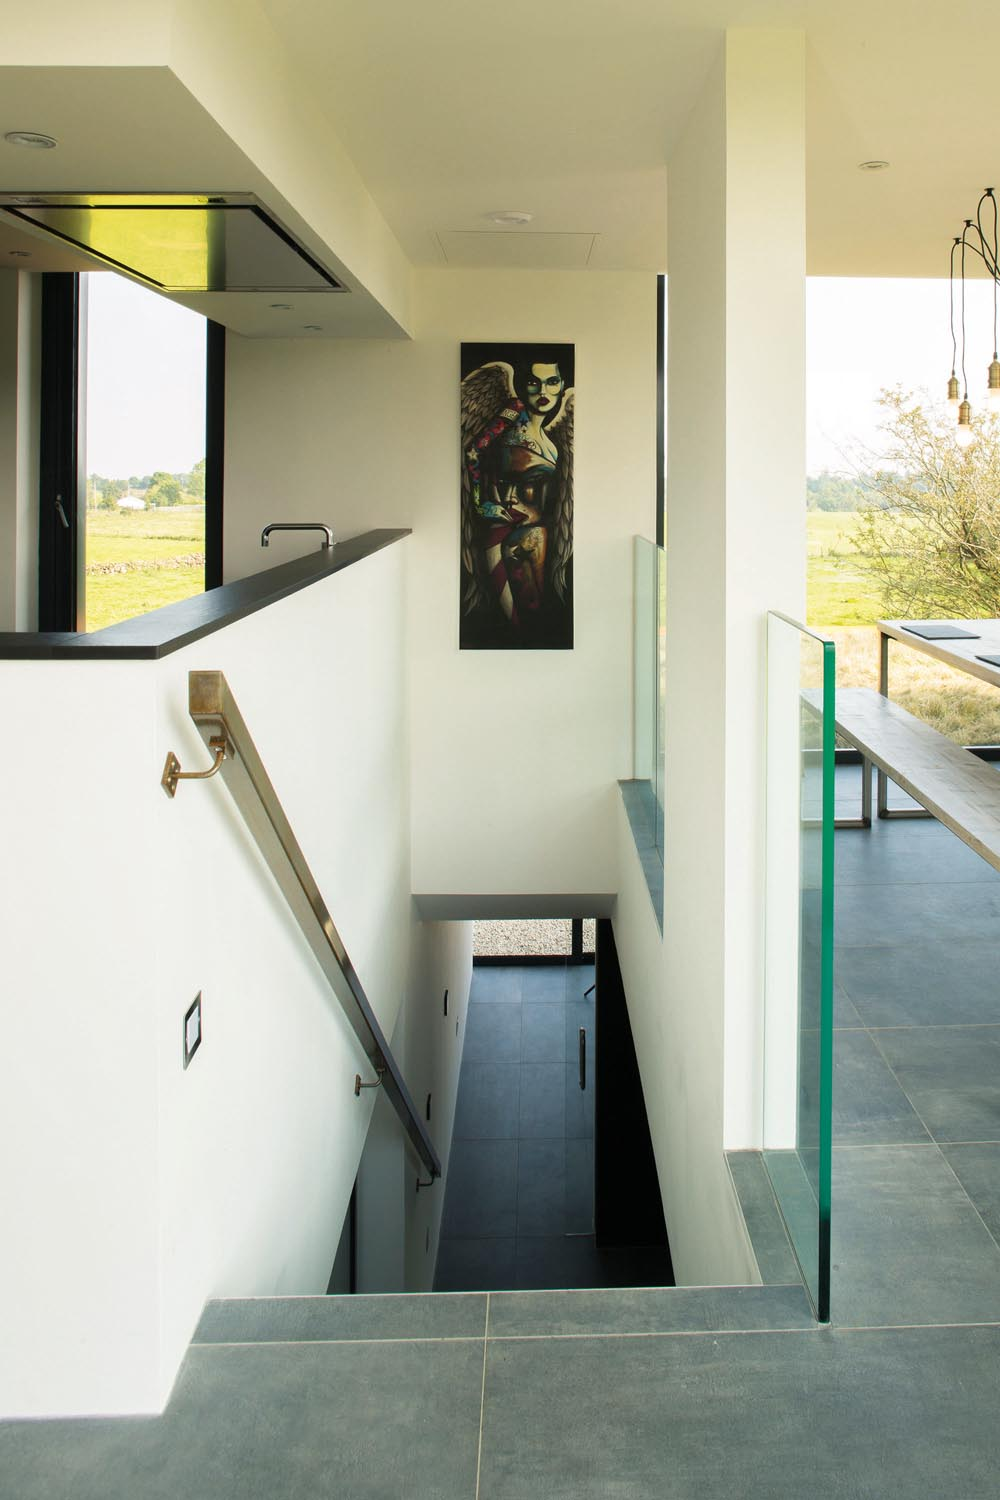 Stairs lead down to the sleeping area, while glass balustrades add to the sense of space and light